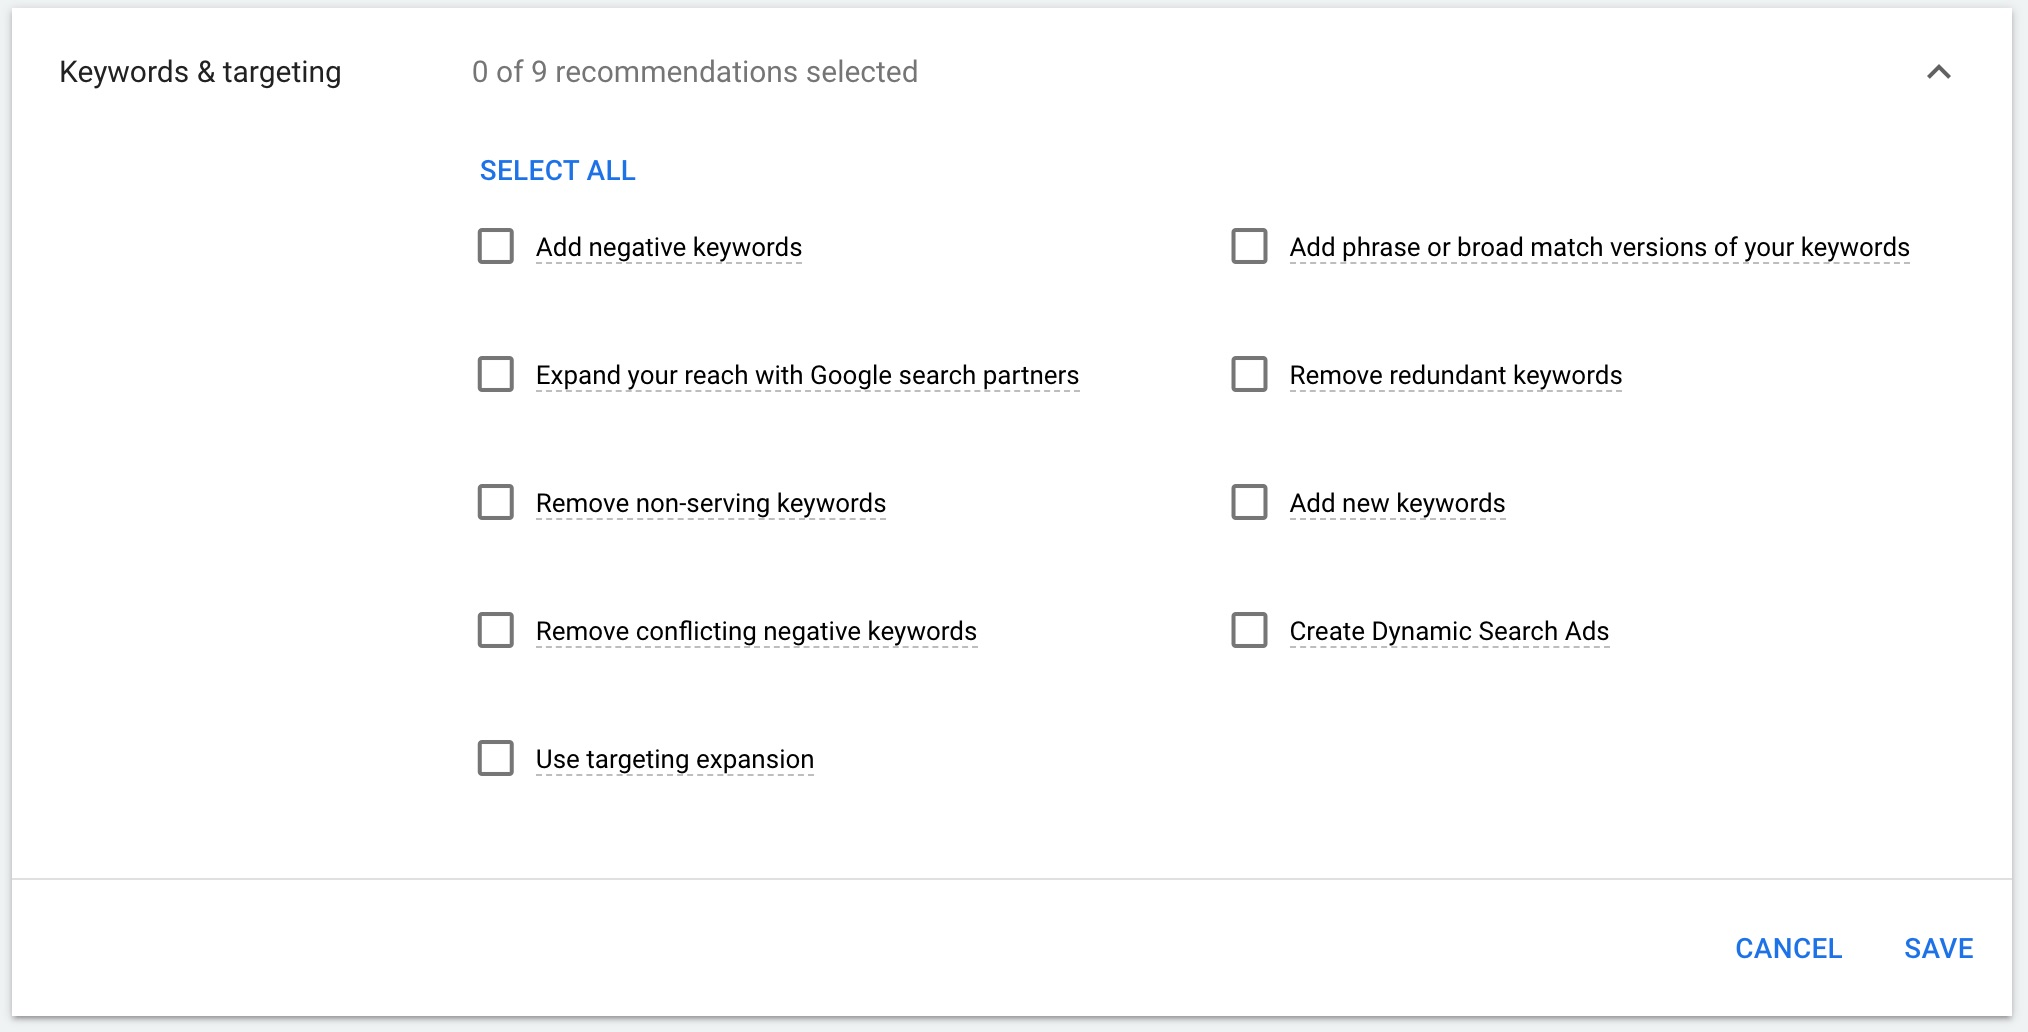 Recommendations for keywords and targeting.